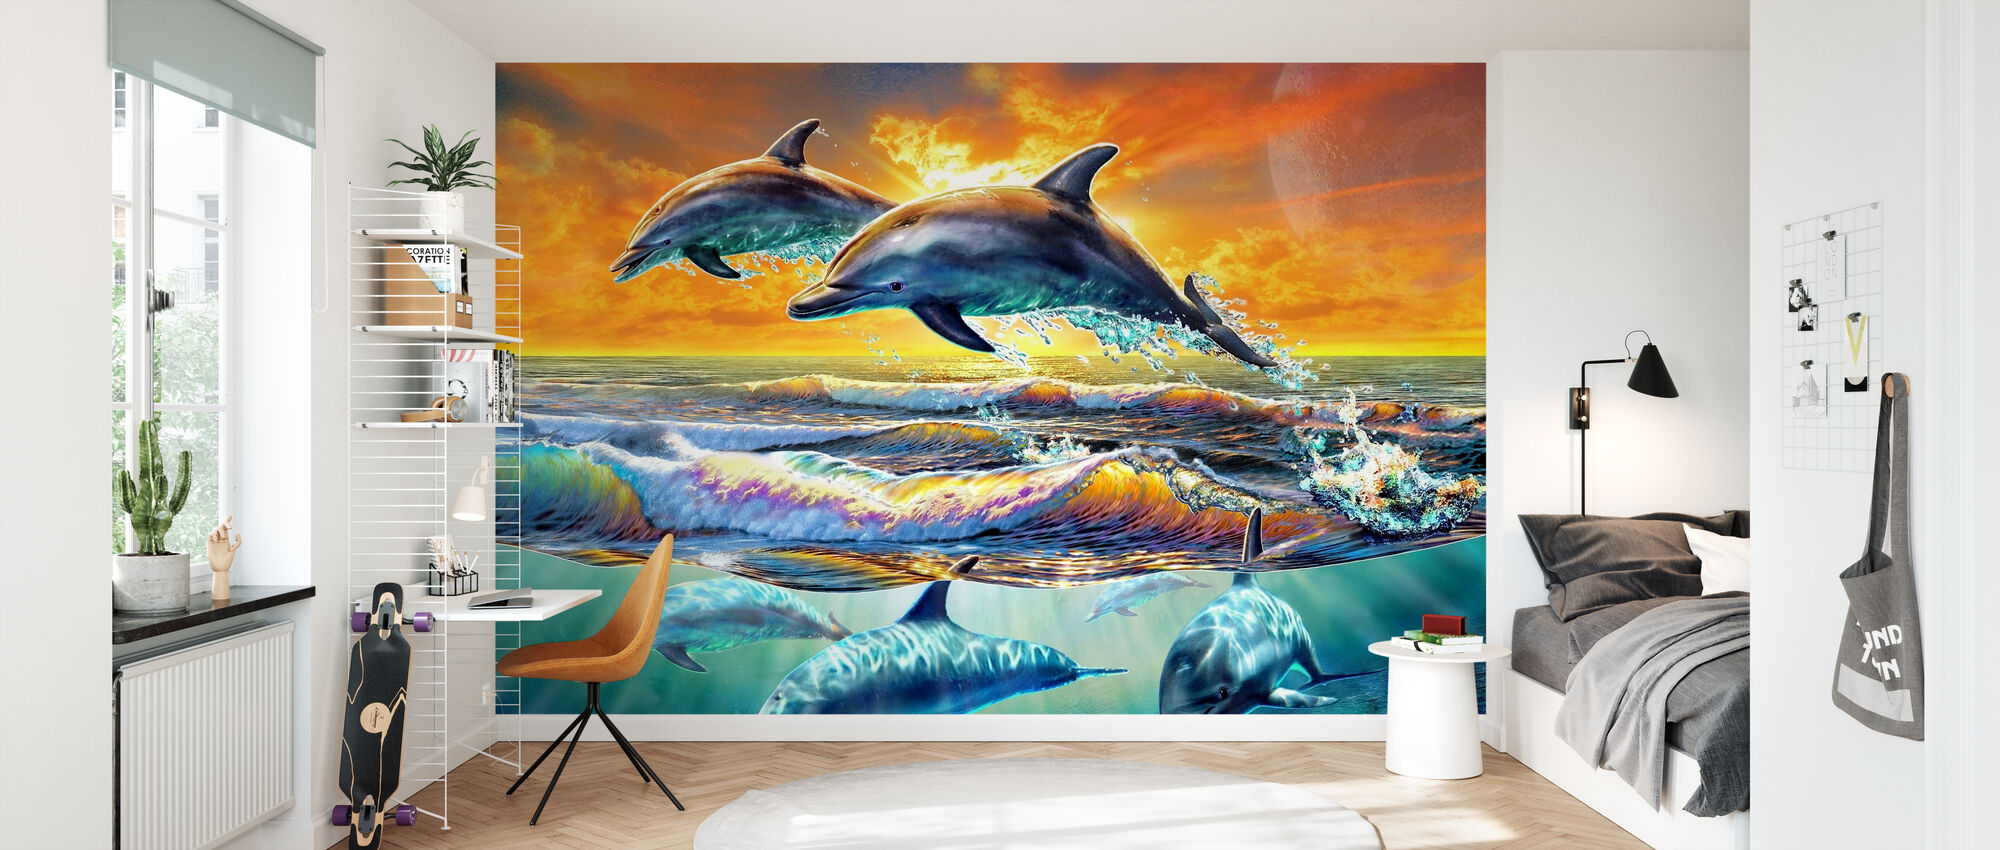 Dolphins at dawn - Wallpaper - Kids Room